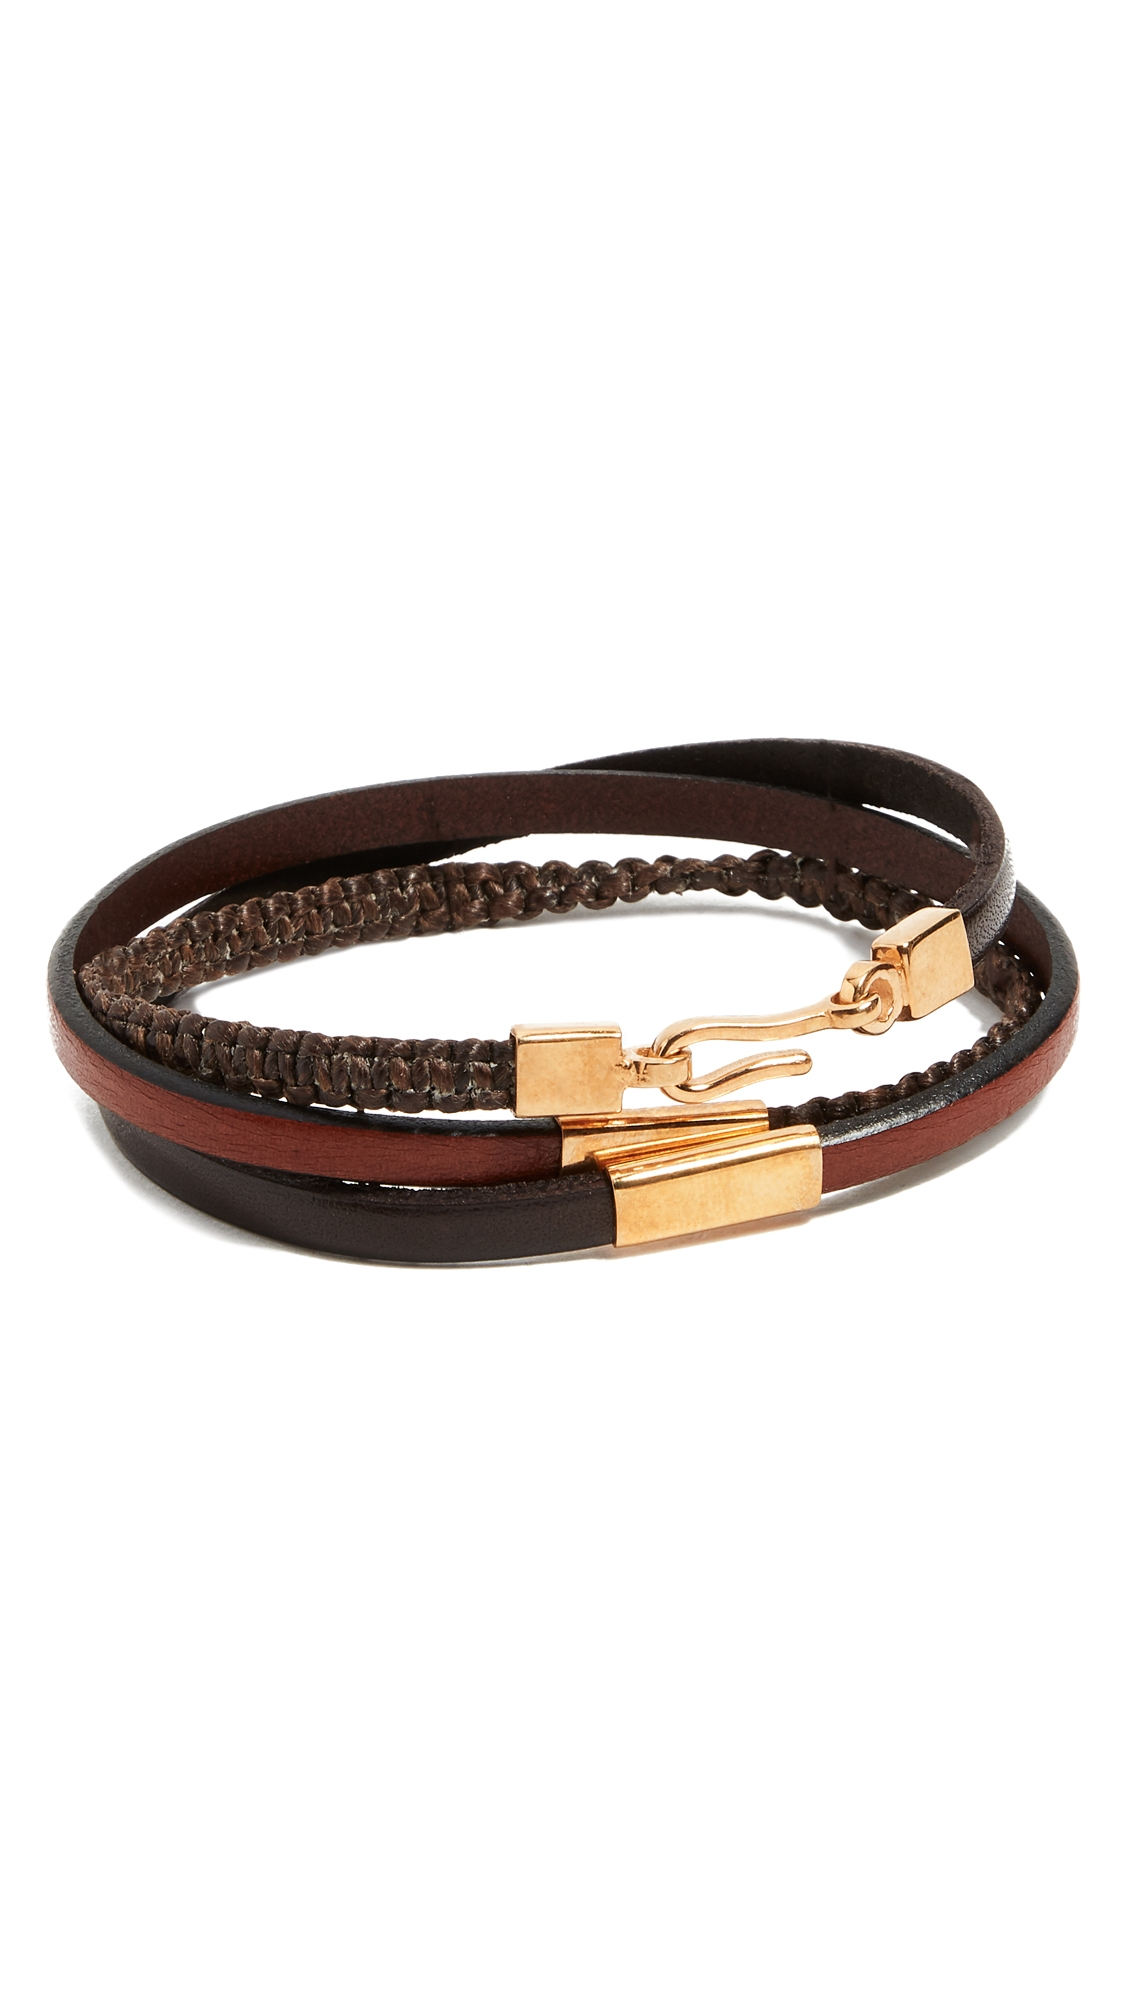 CAPUTO & CO. HAND KNOTTED TRIPLE WRAP BRACELET